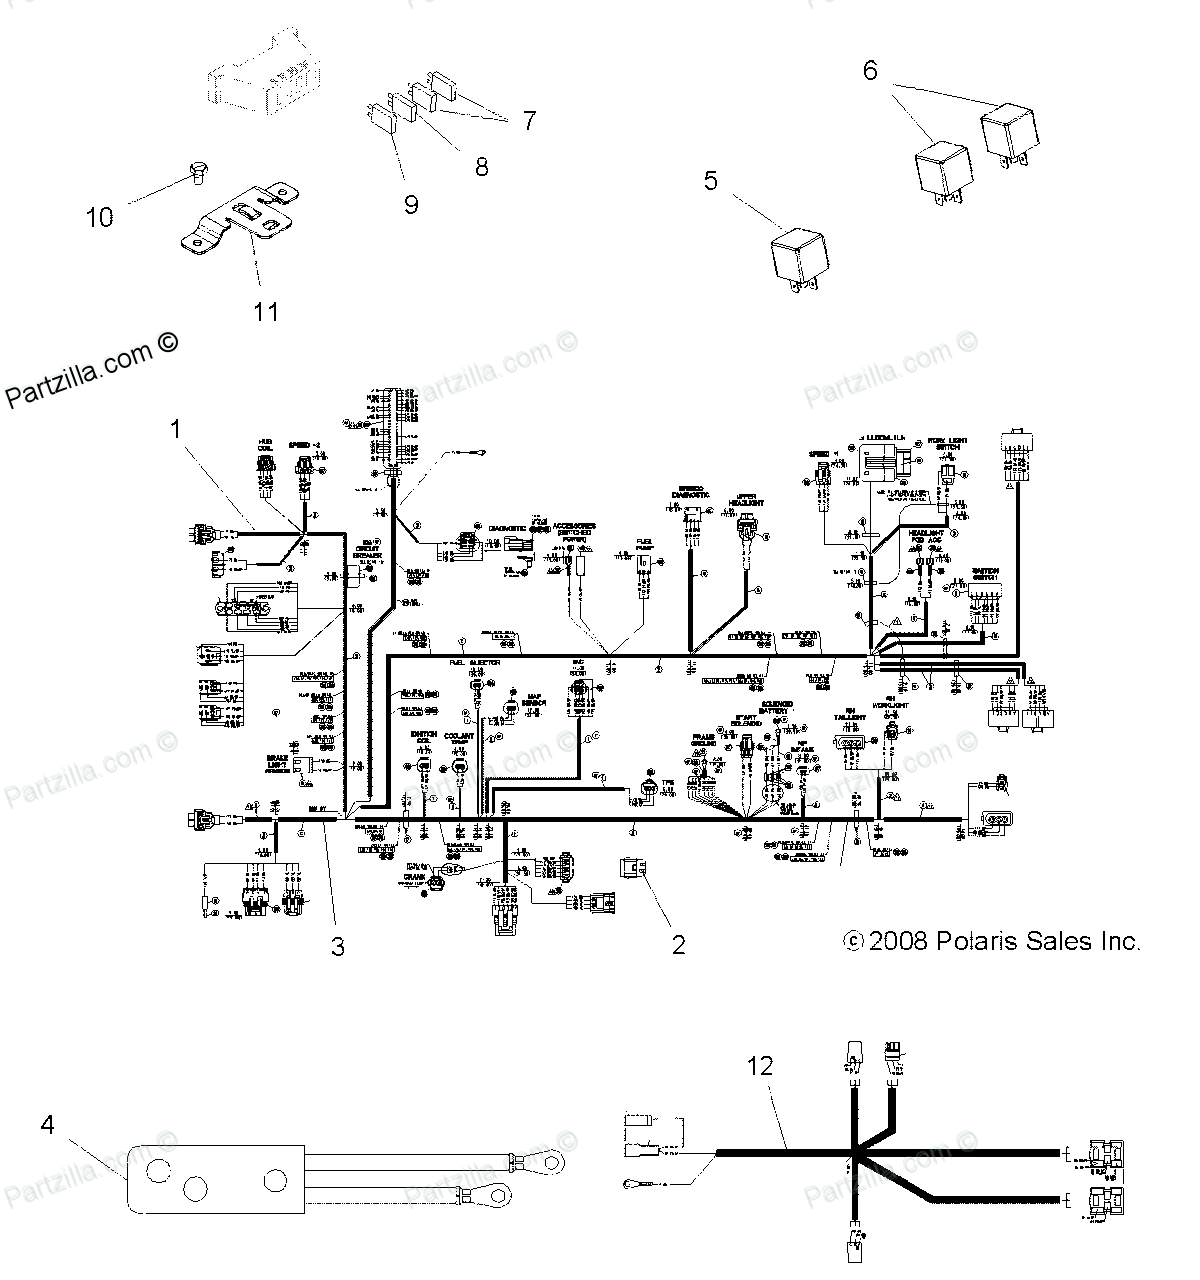 [DIAGRAM] Polaris Sportsman 600 Wiring Diagram FULL